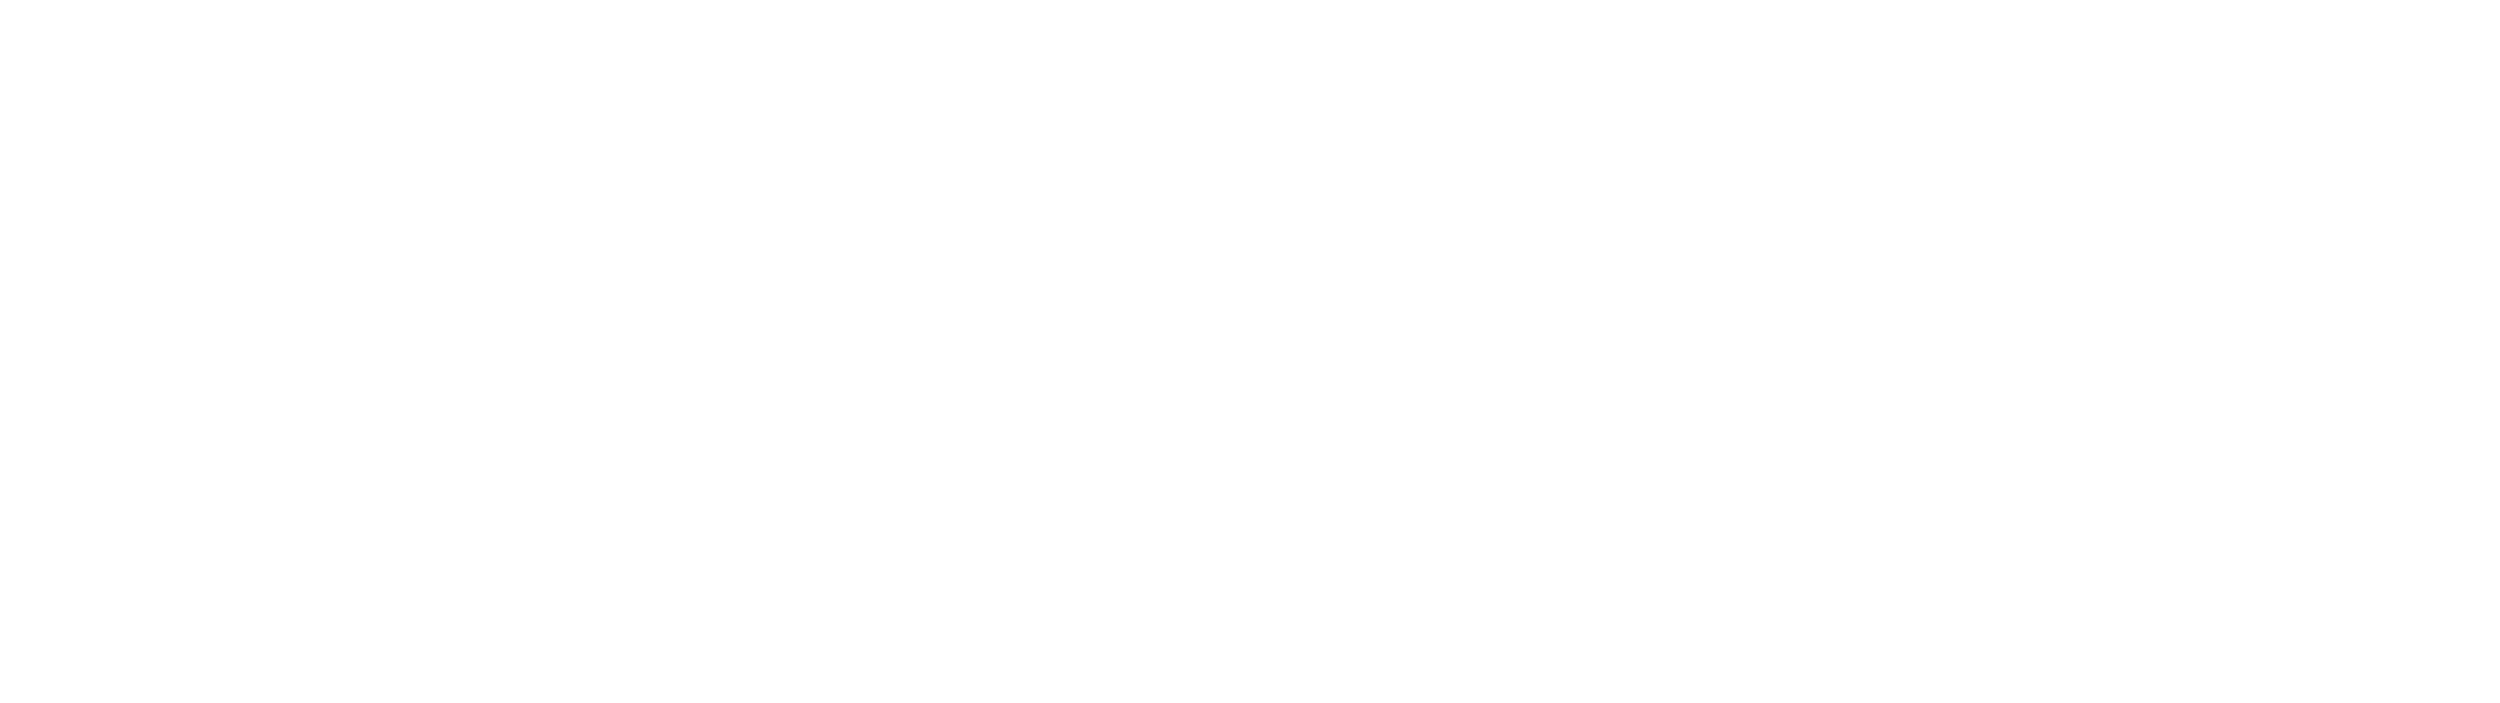 Video-01.png